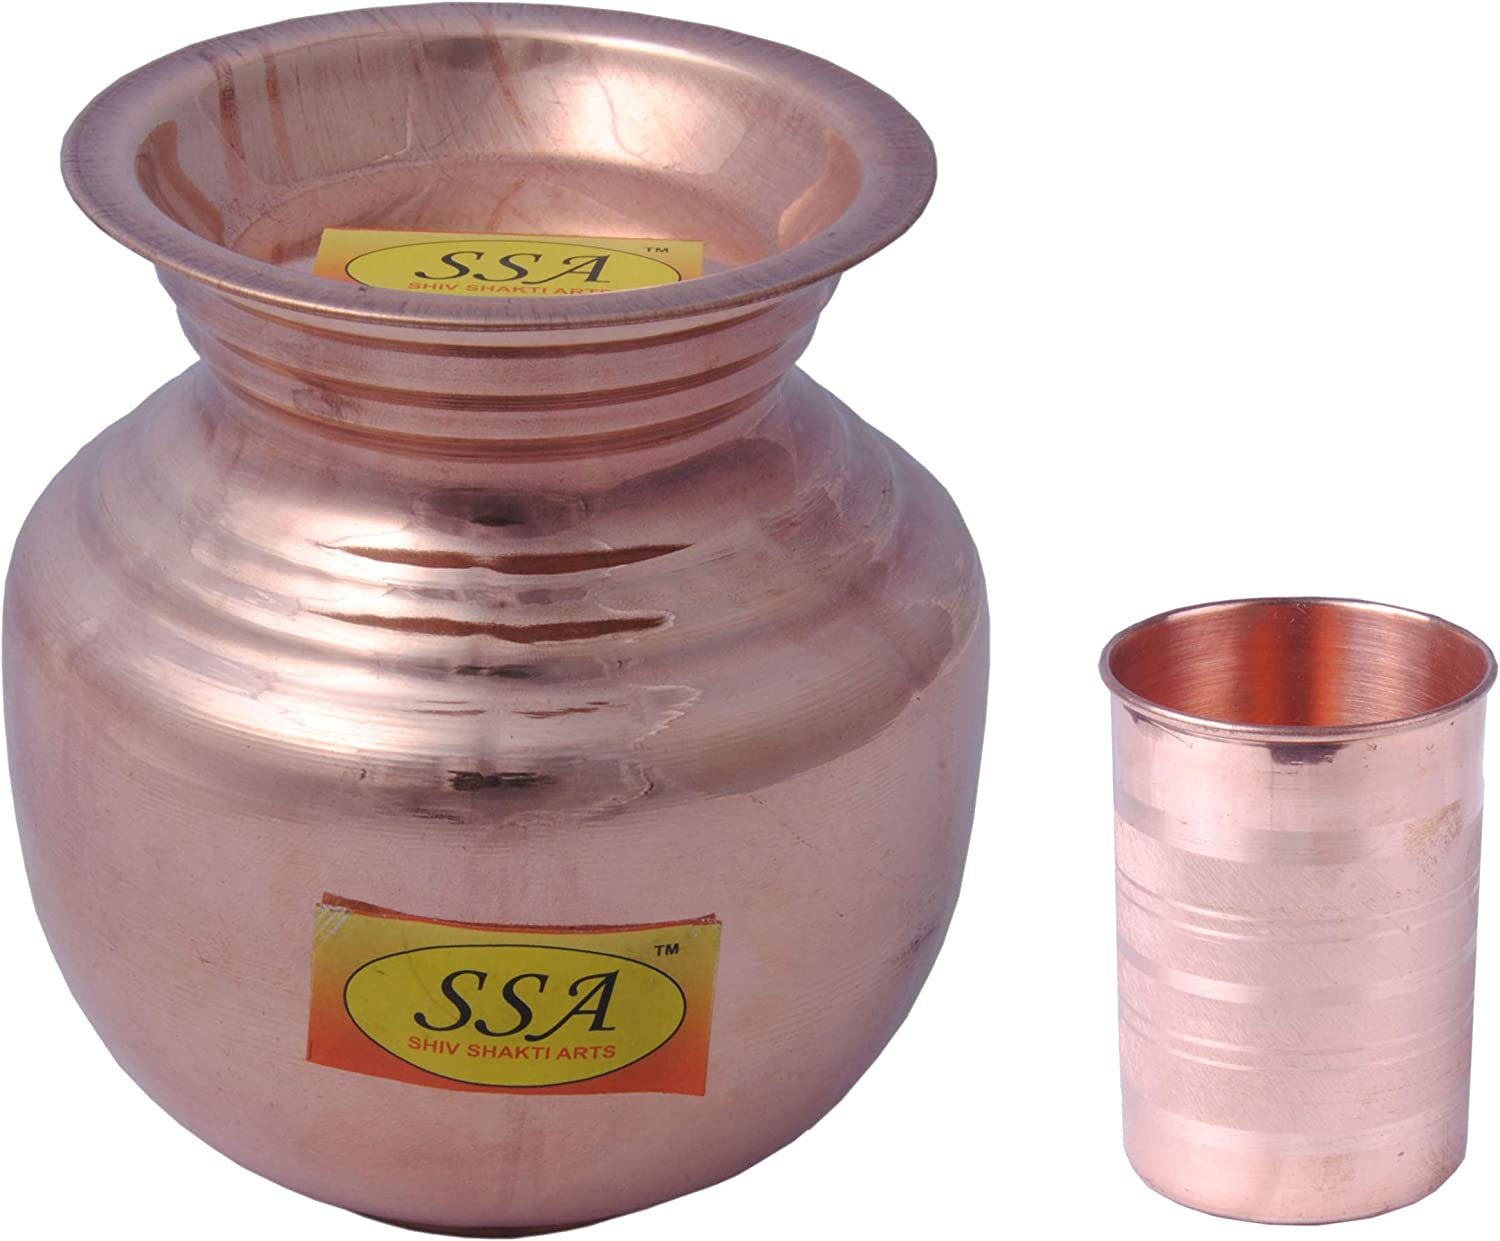 SHIV SHAKTI ARTS (Dia 29 cm X Height 37 cm) Pure Copper Water Pot Dispenser Matka Water Tank Water Storage Lacquer Coated Silver Touch Capacity 12 Litre Weight 1644 gm for use Storage Drinking Water Restaurant Hotel Home Ware Gift Item Home Decore Good He